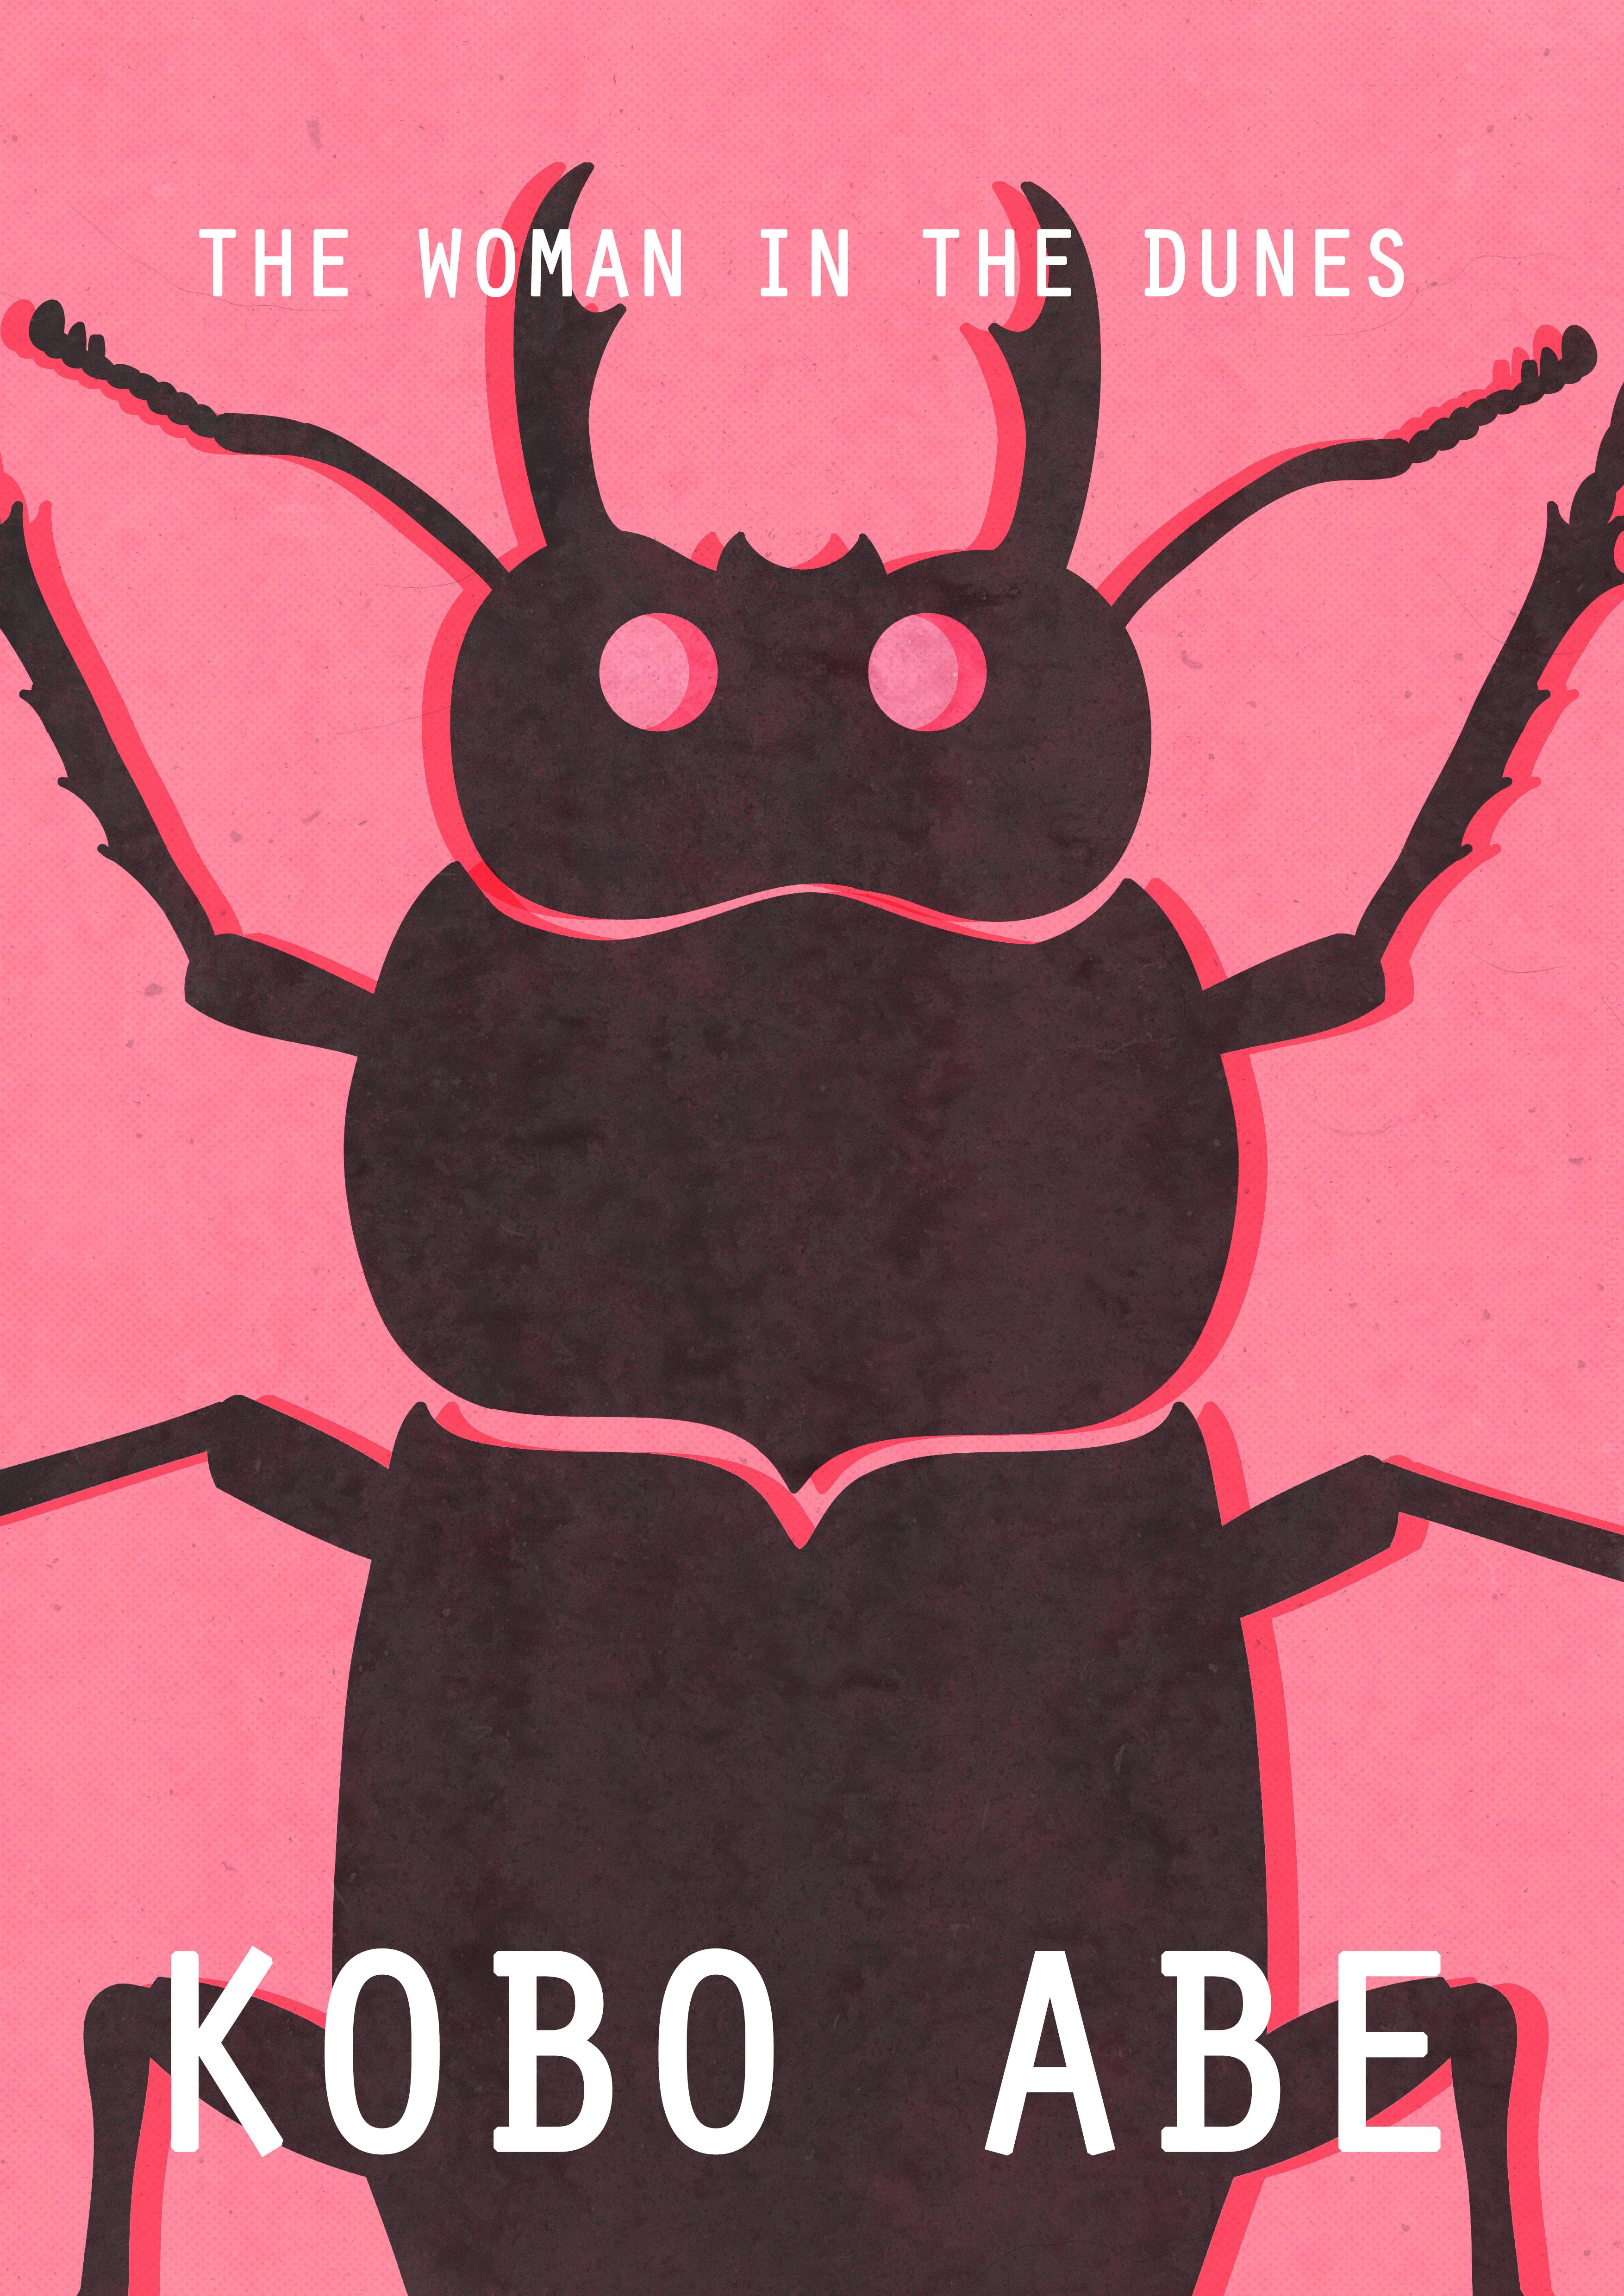 #Woman #Dunes #Kobo #Abe #Design #Book #cover #illustration #beetle #pink #modern #insect #graphic #design #art #creative